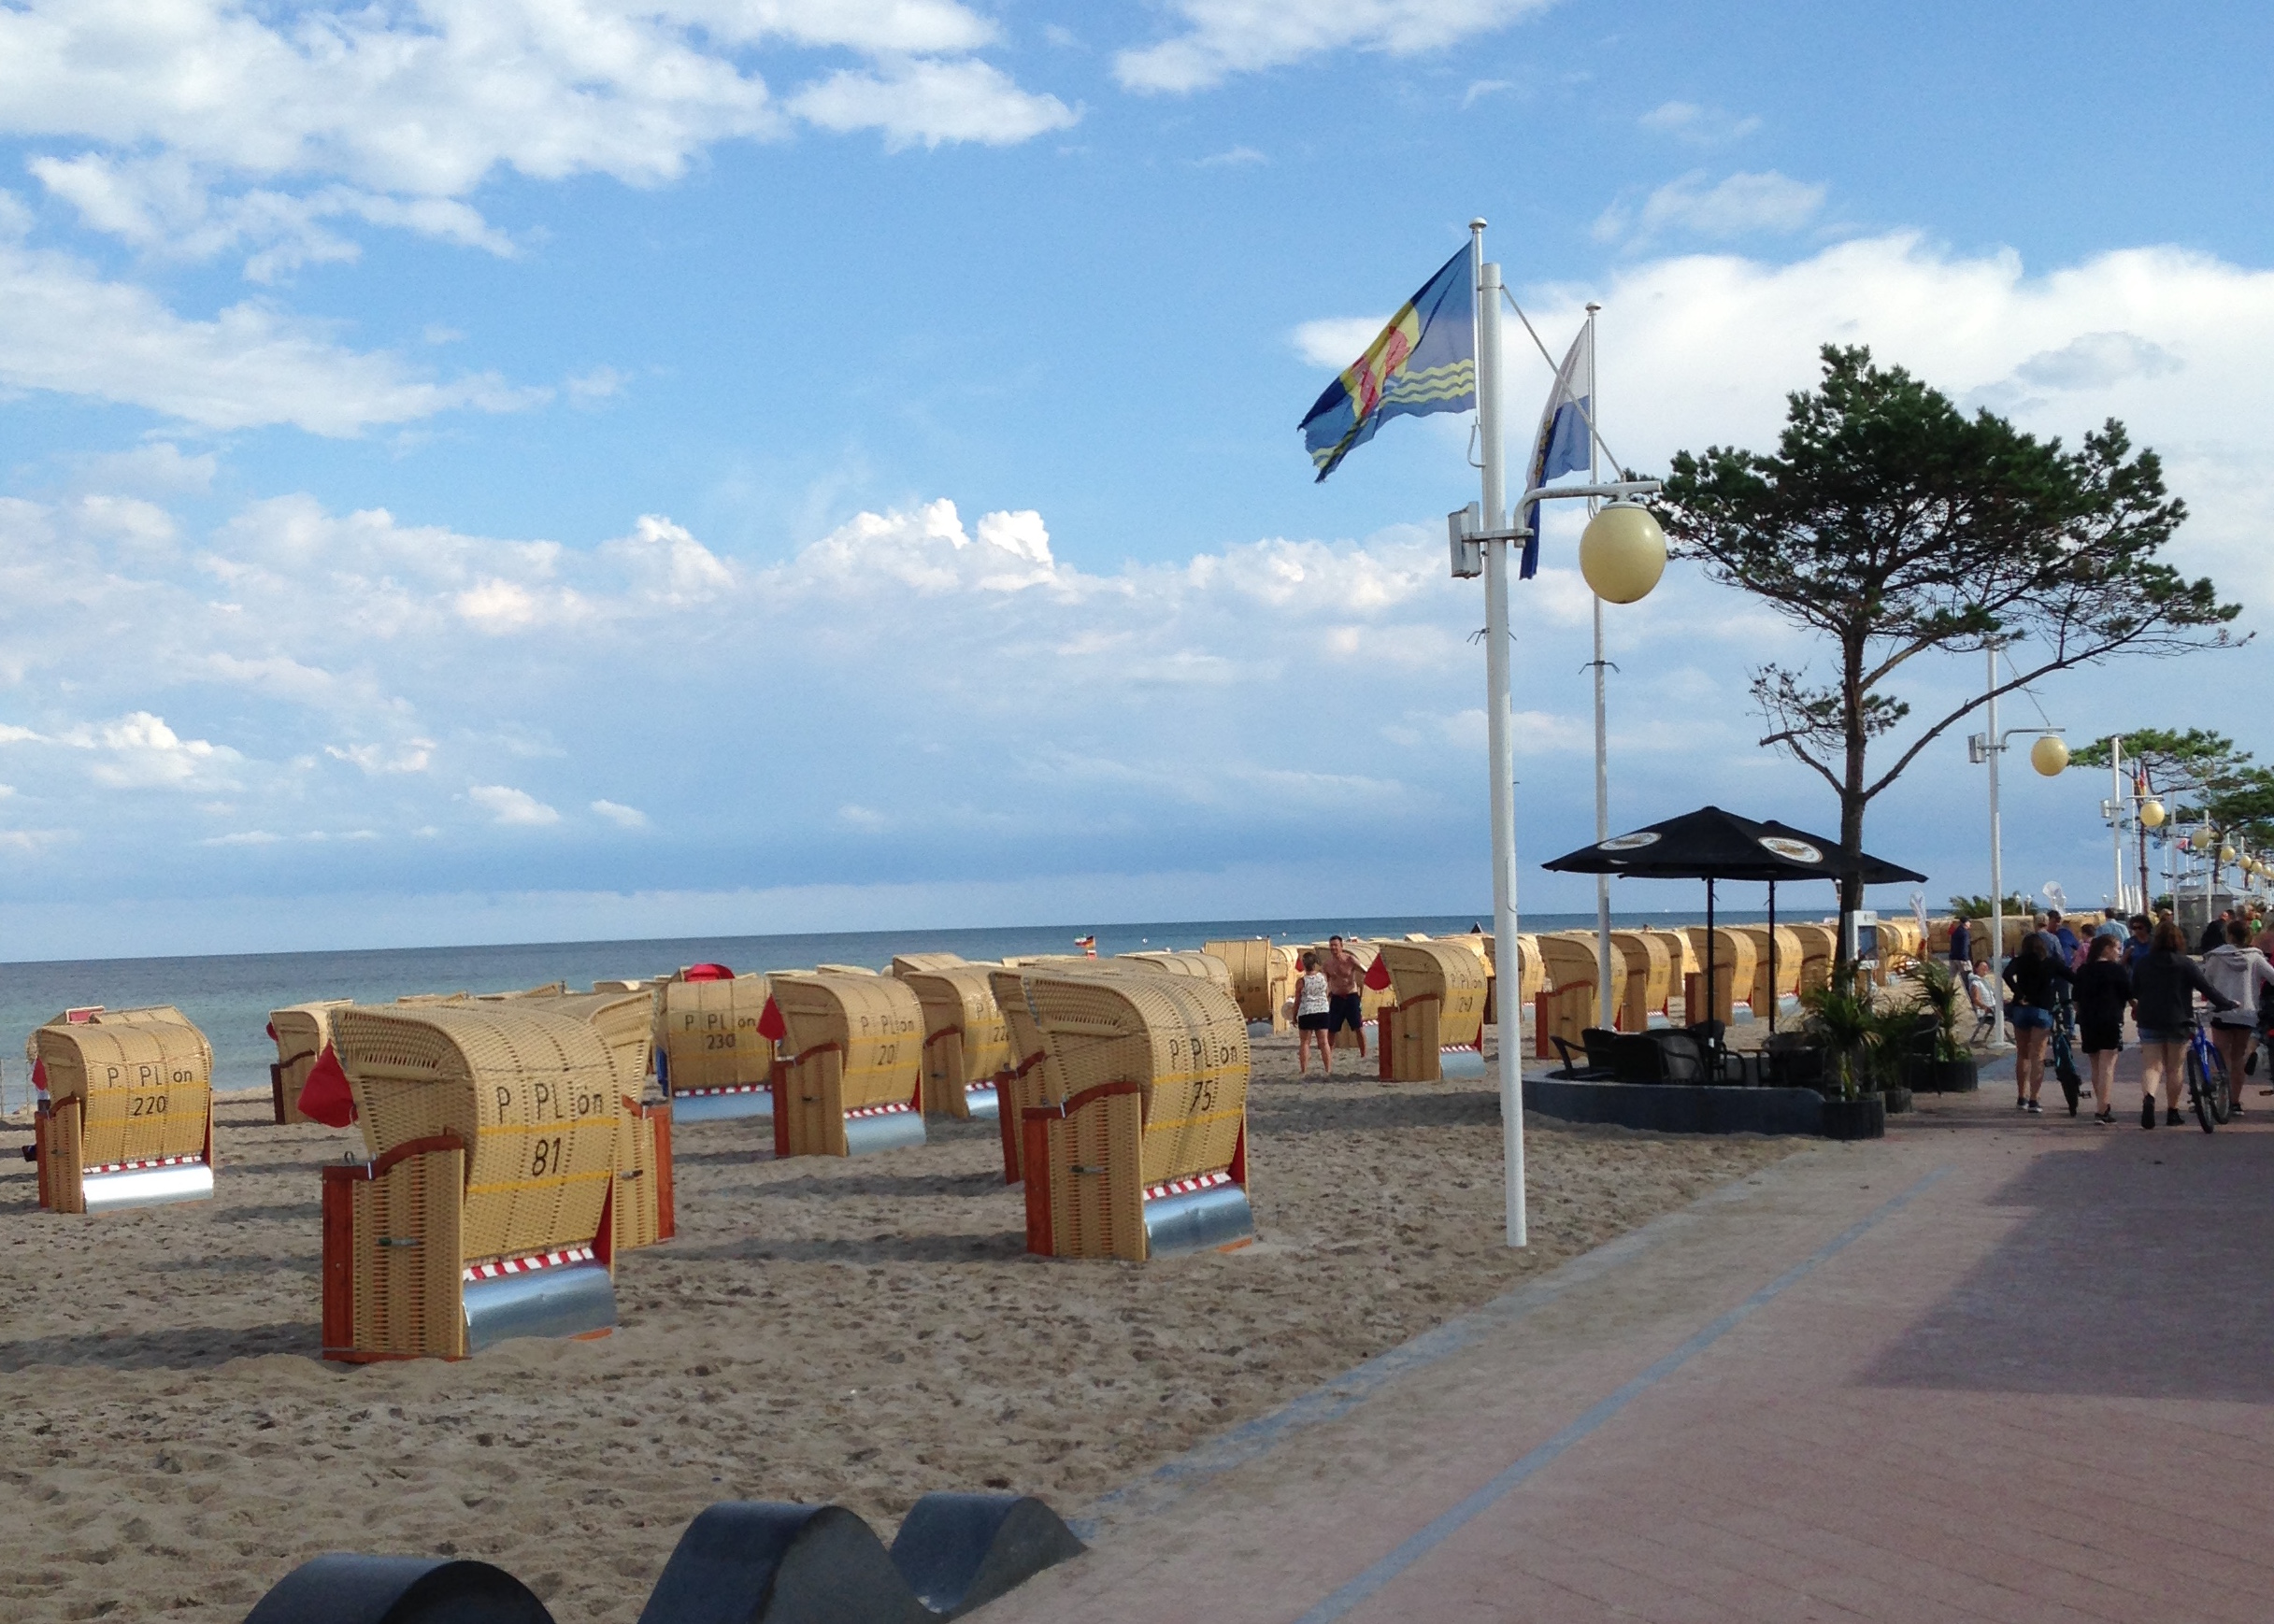 Strand in Dahme